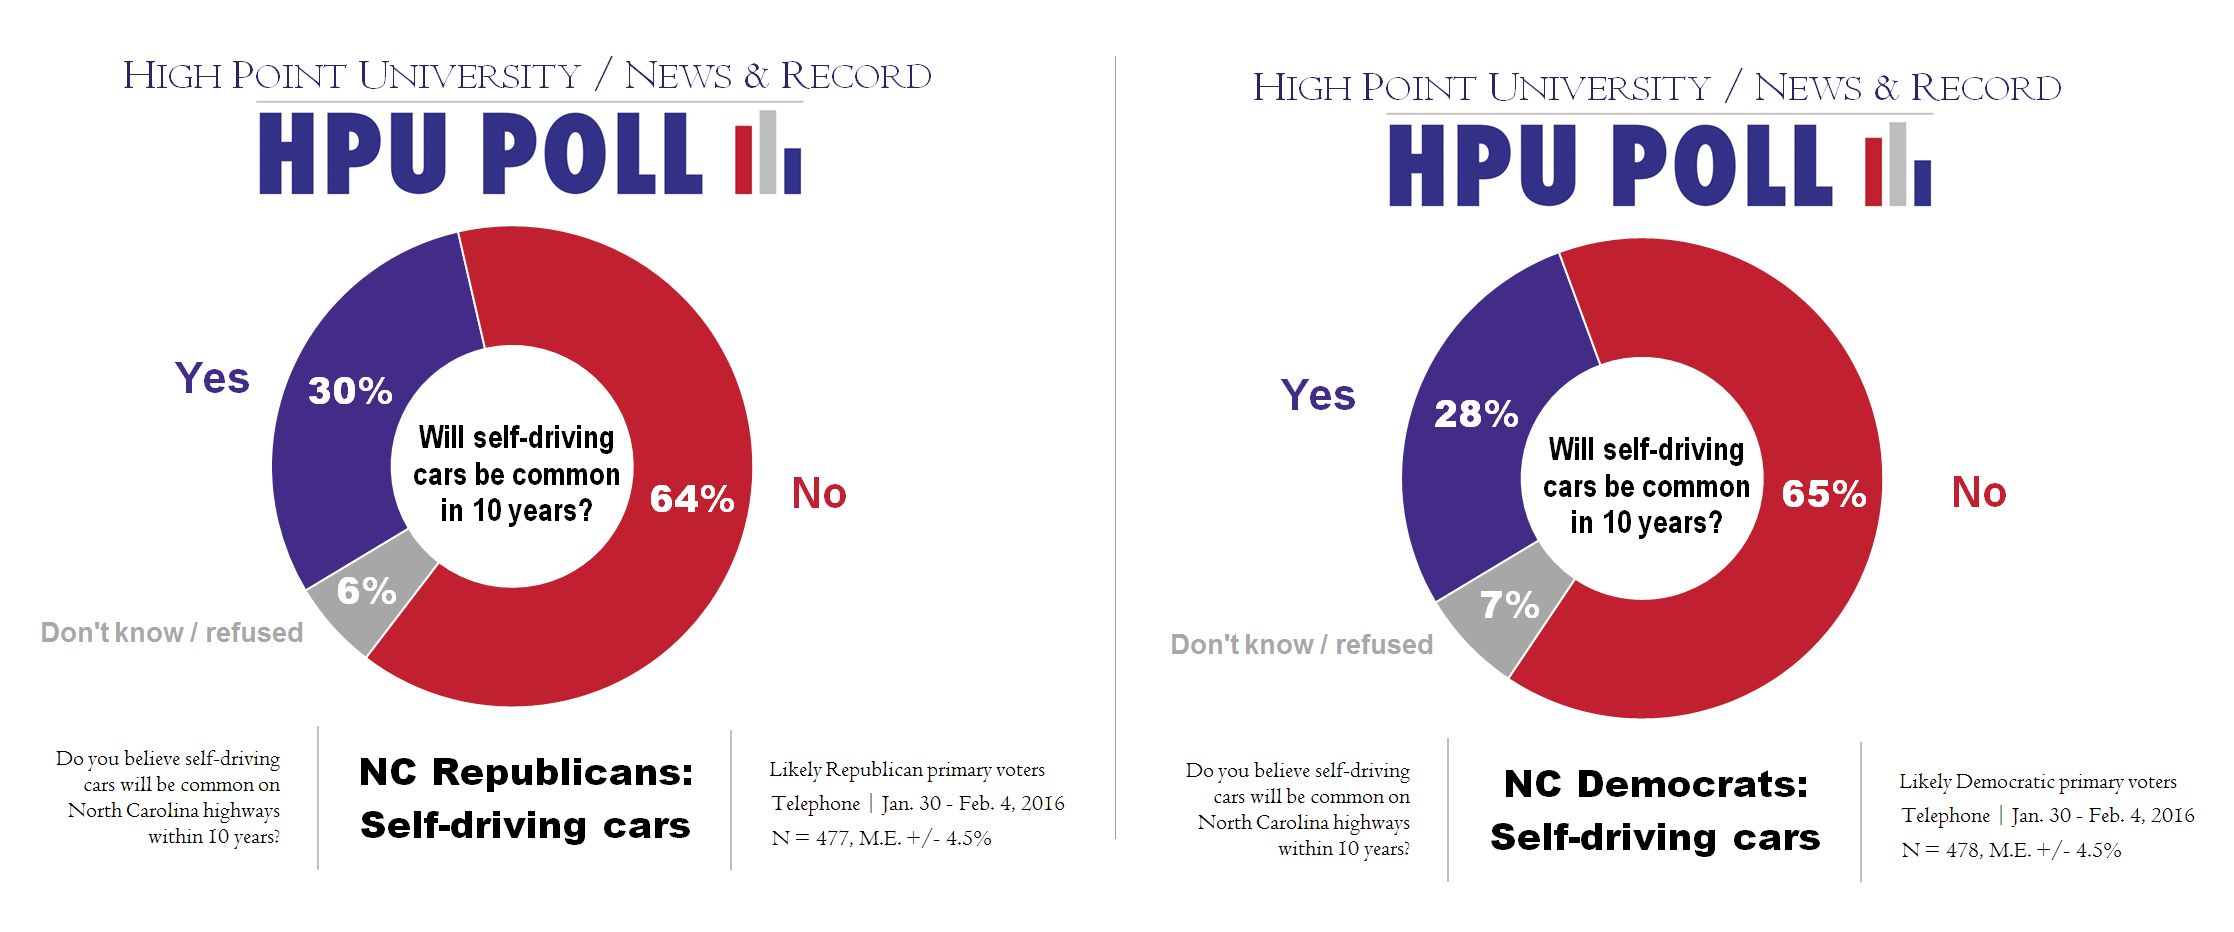 HPU N&R Poll - self-driving cars - Rep vs Dem